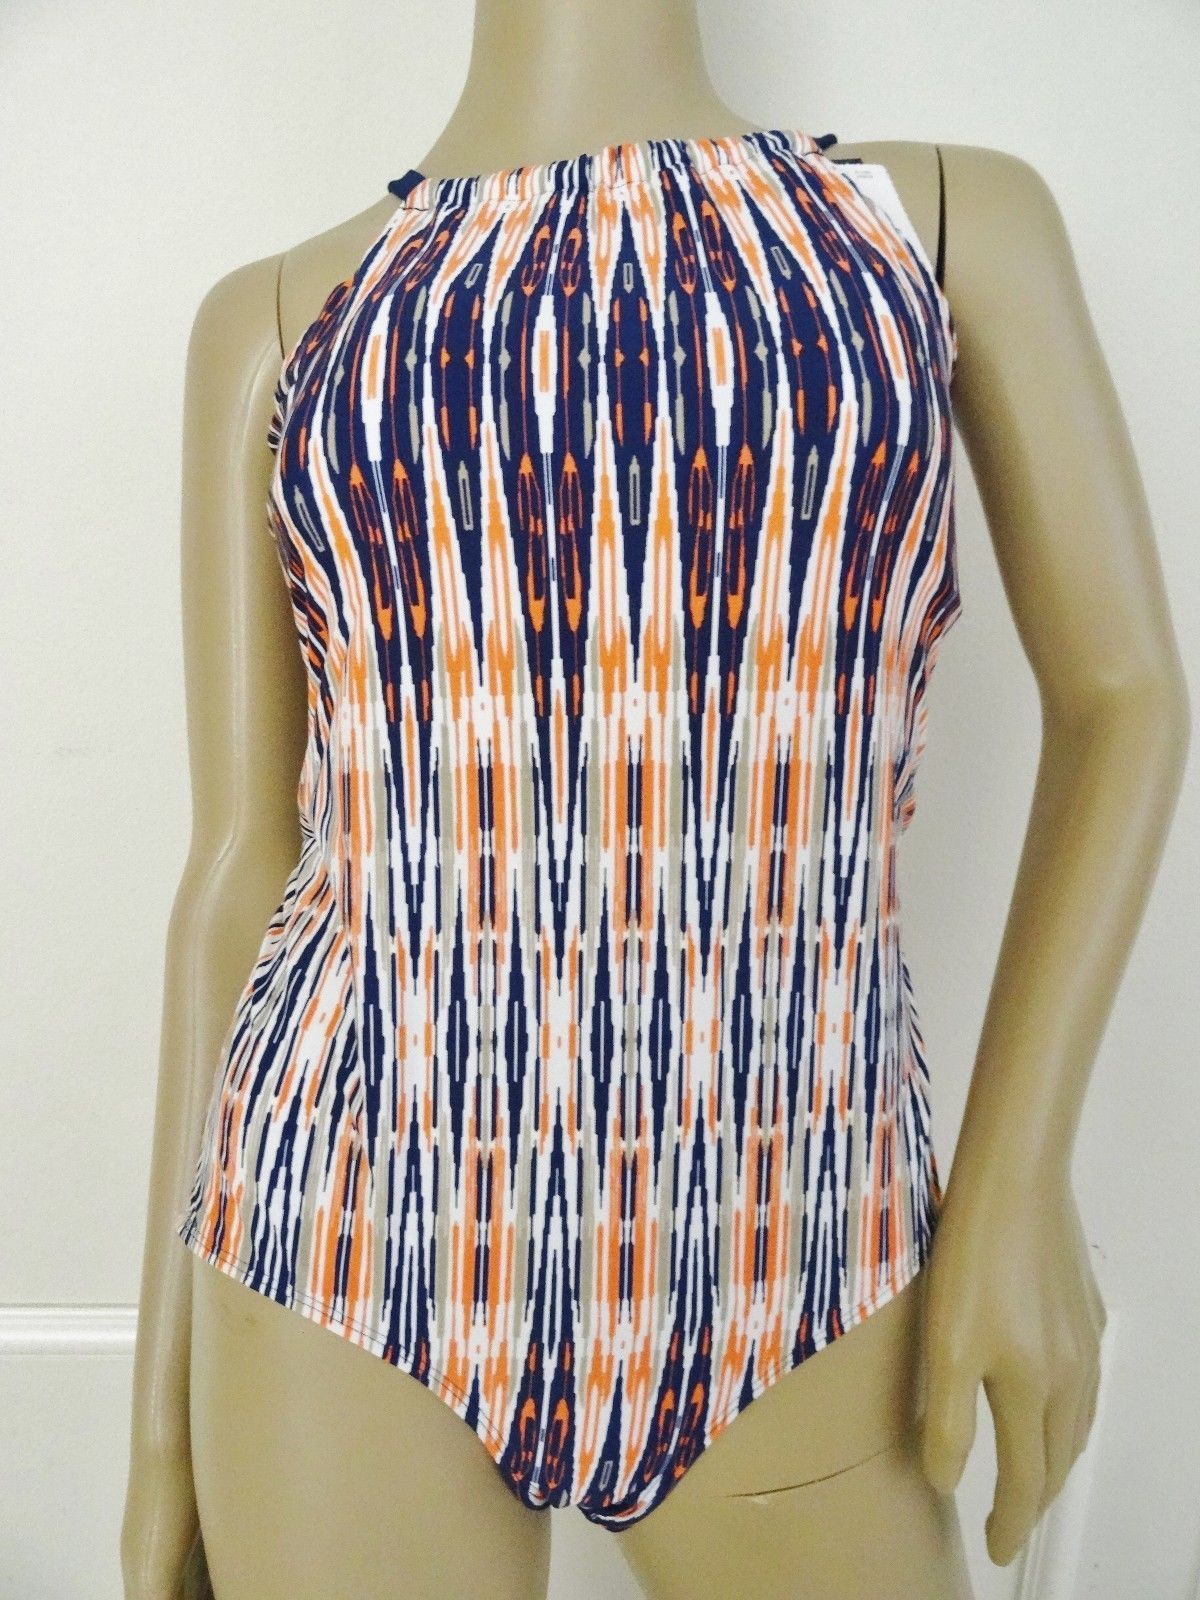 e5a31afd4ff07 Nwt Jones New York 1 PC One Piece High Neck and 50 similar items